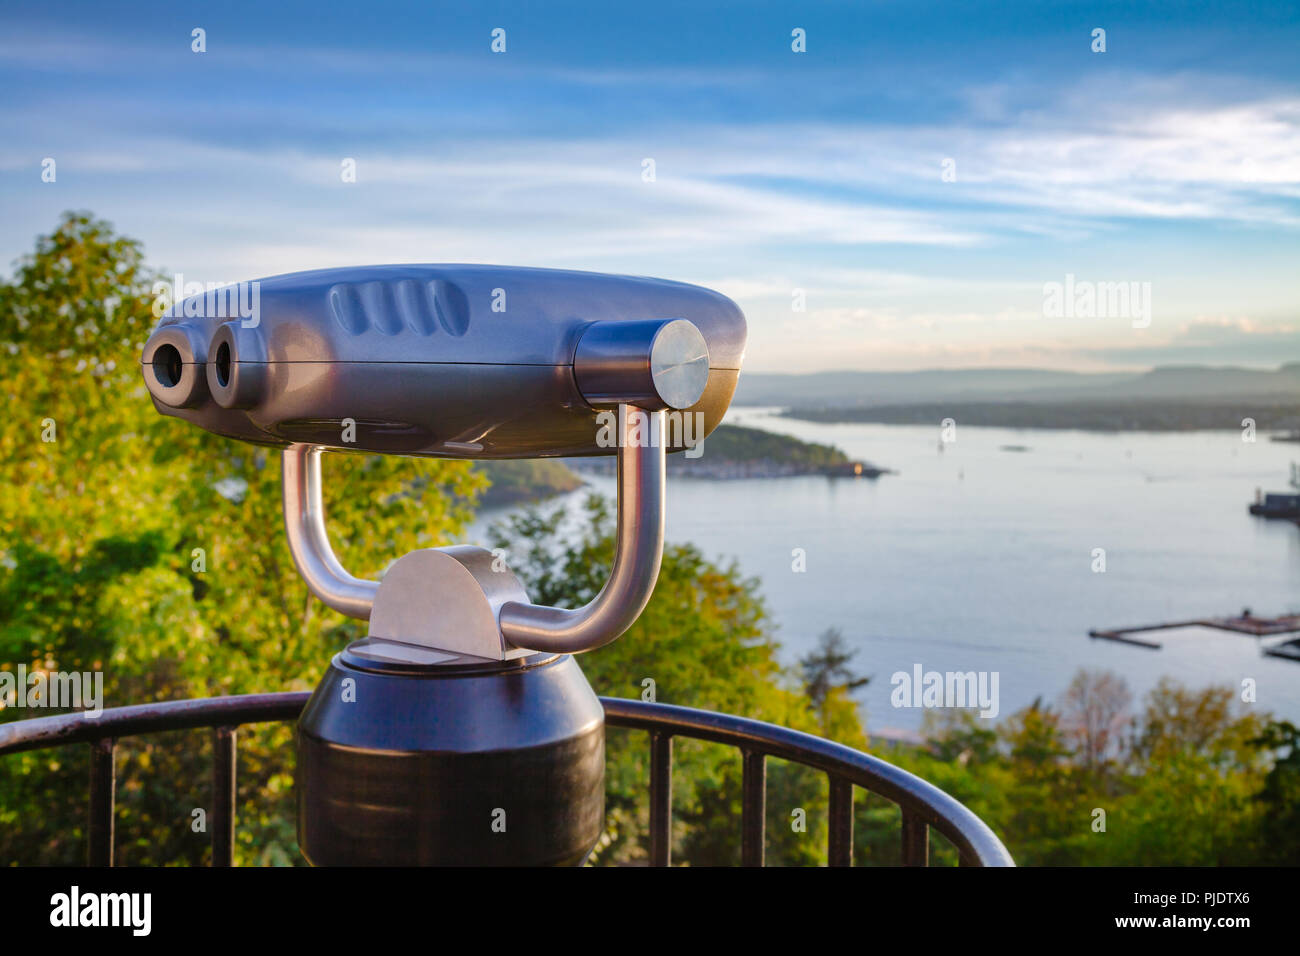 Tourist binocular telescope at the Ekeberg hill overlooking Oslo cityscape at sunset - travel in Norway concept - Stock Image